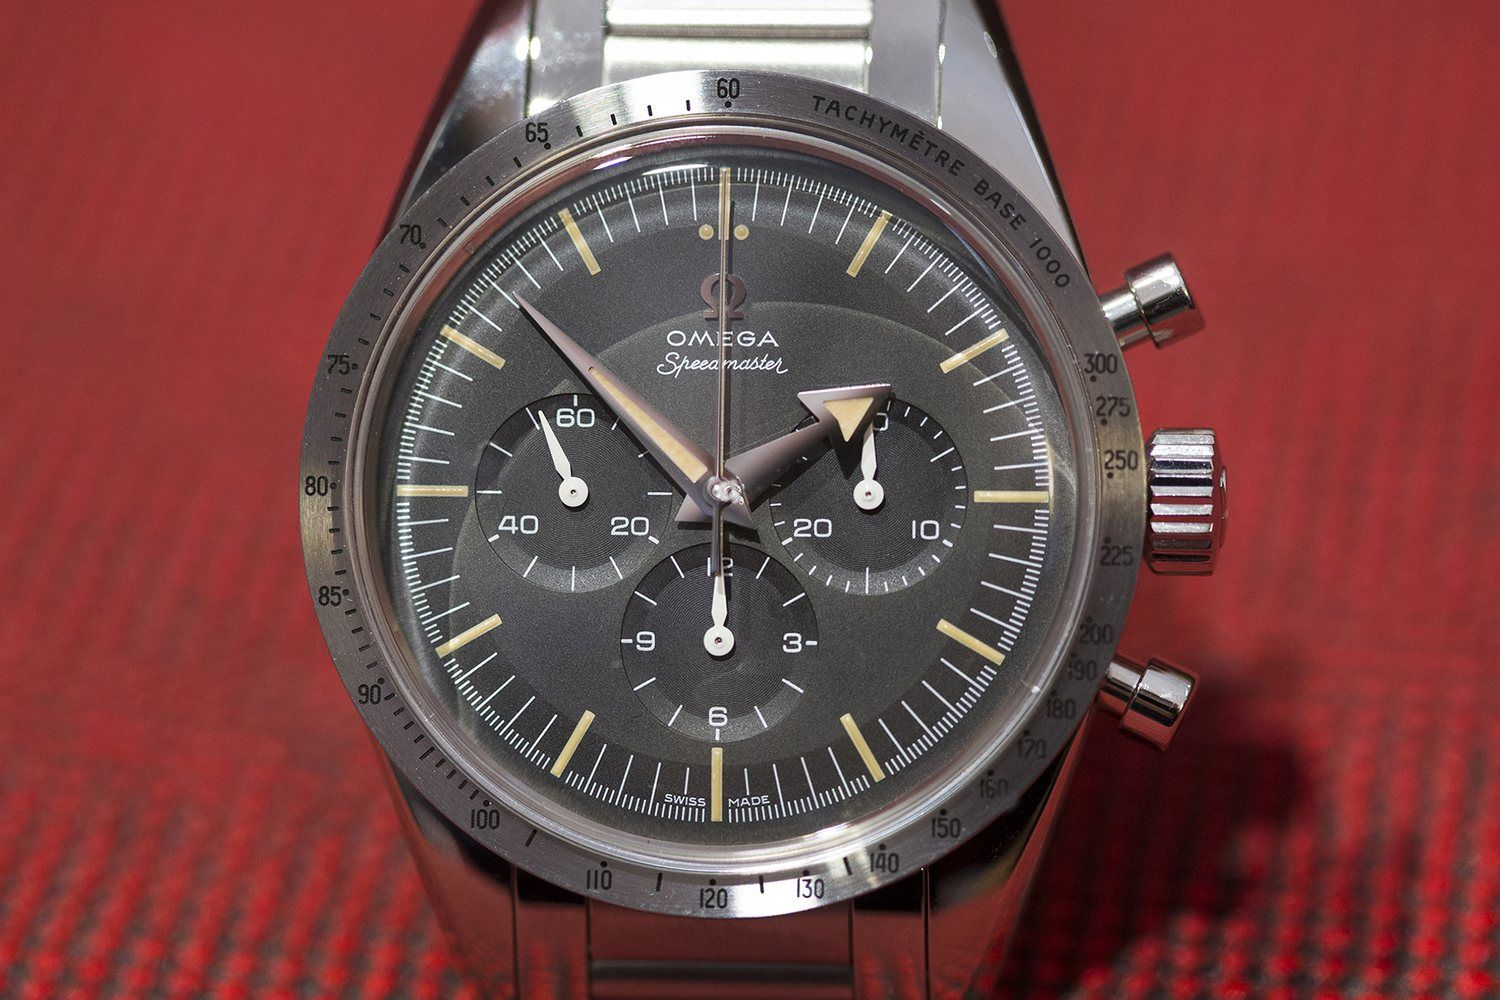 Today was the first official day of Baselworld 2017, and as we've done for so many years now, we began the day at 9:00 AM with Omega. Omega is surely having one of the strongest fairs so far, showing not only some amazing limited editions that have the interwebs chattering, but also some really nice commercial pieces such as the racing dial master chronometer Speedmasters. Today, Ben and Louis sat down to discuss their favorite pieces from the 2017 Omega collection and provide all the inf...